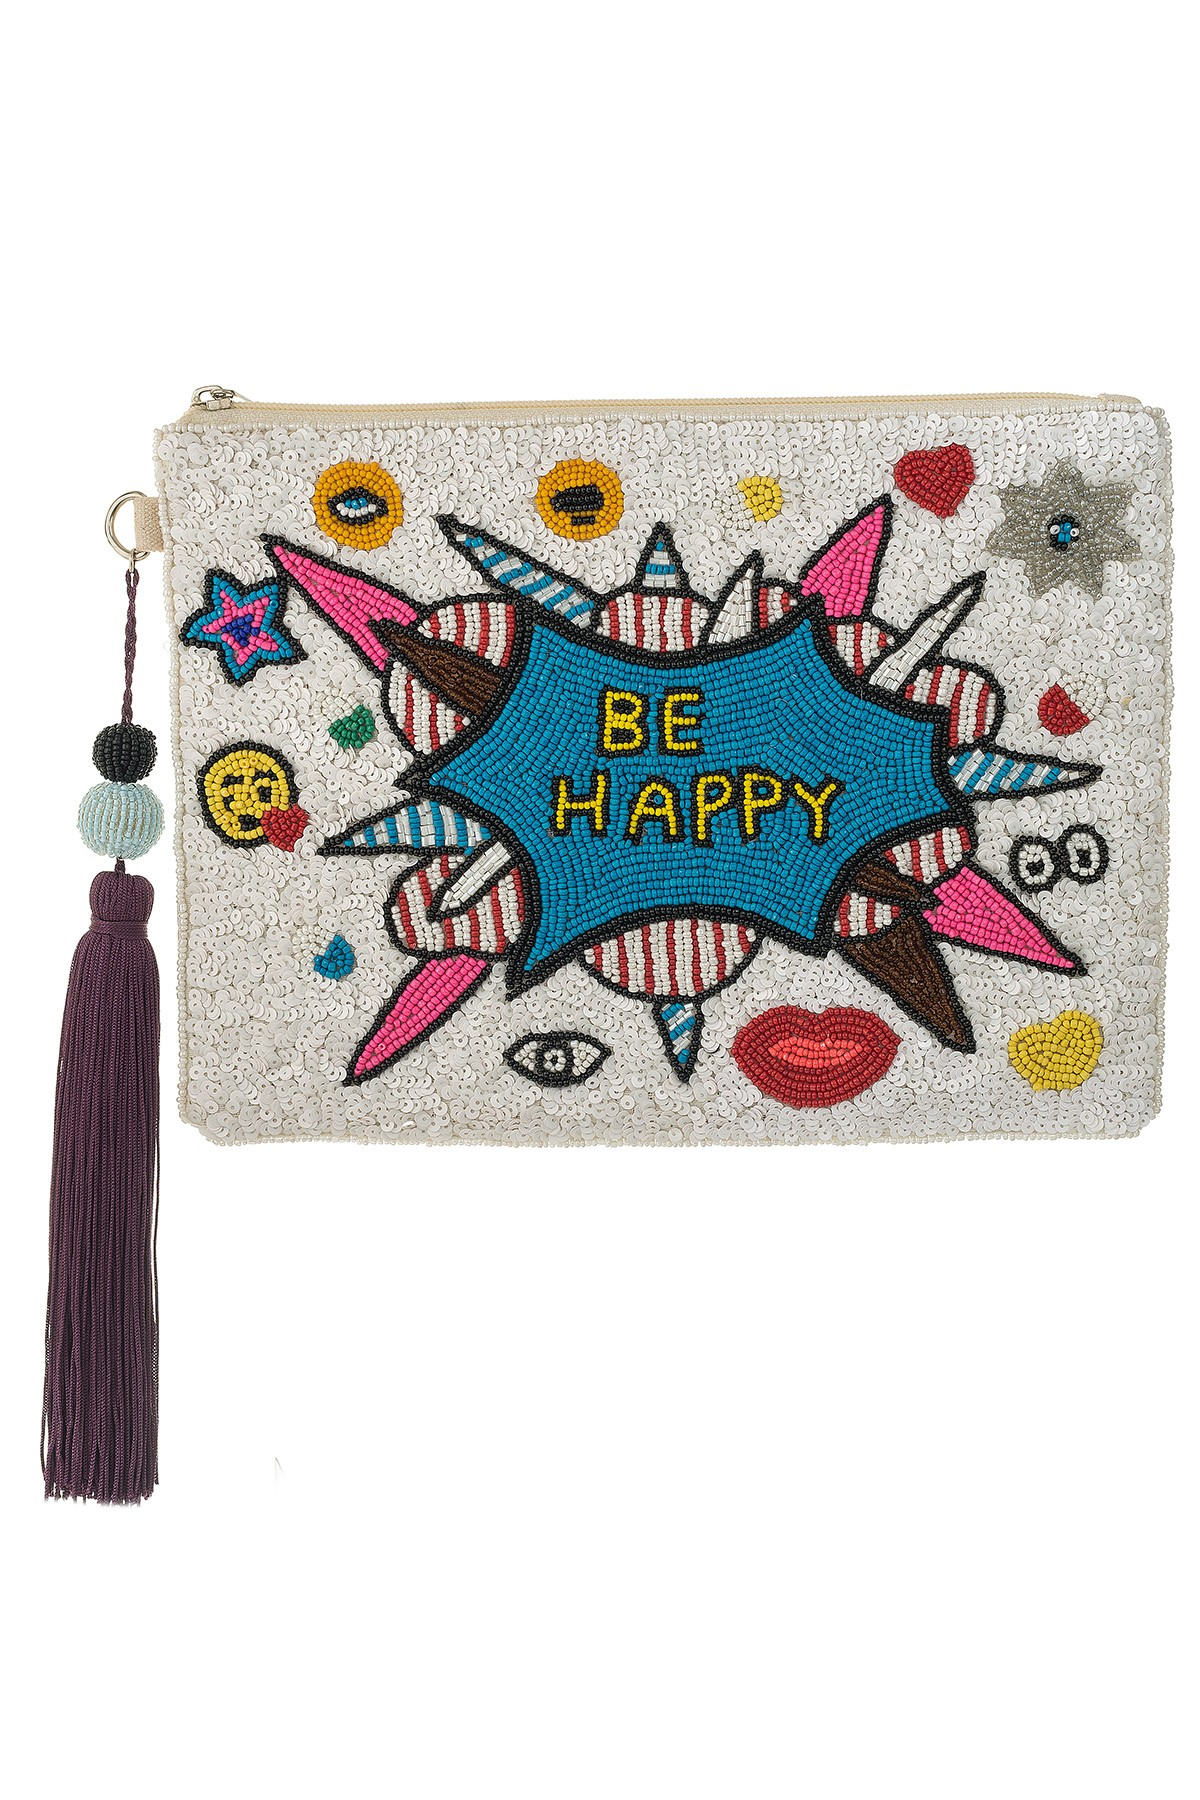 BE HAPPY_White Large Clutch